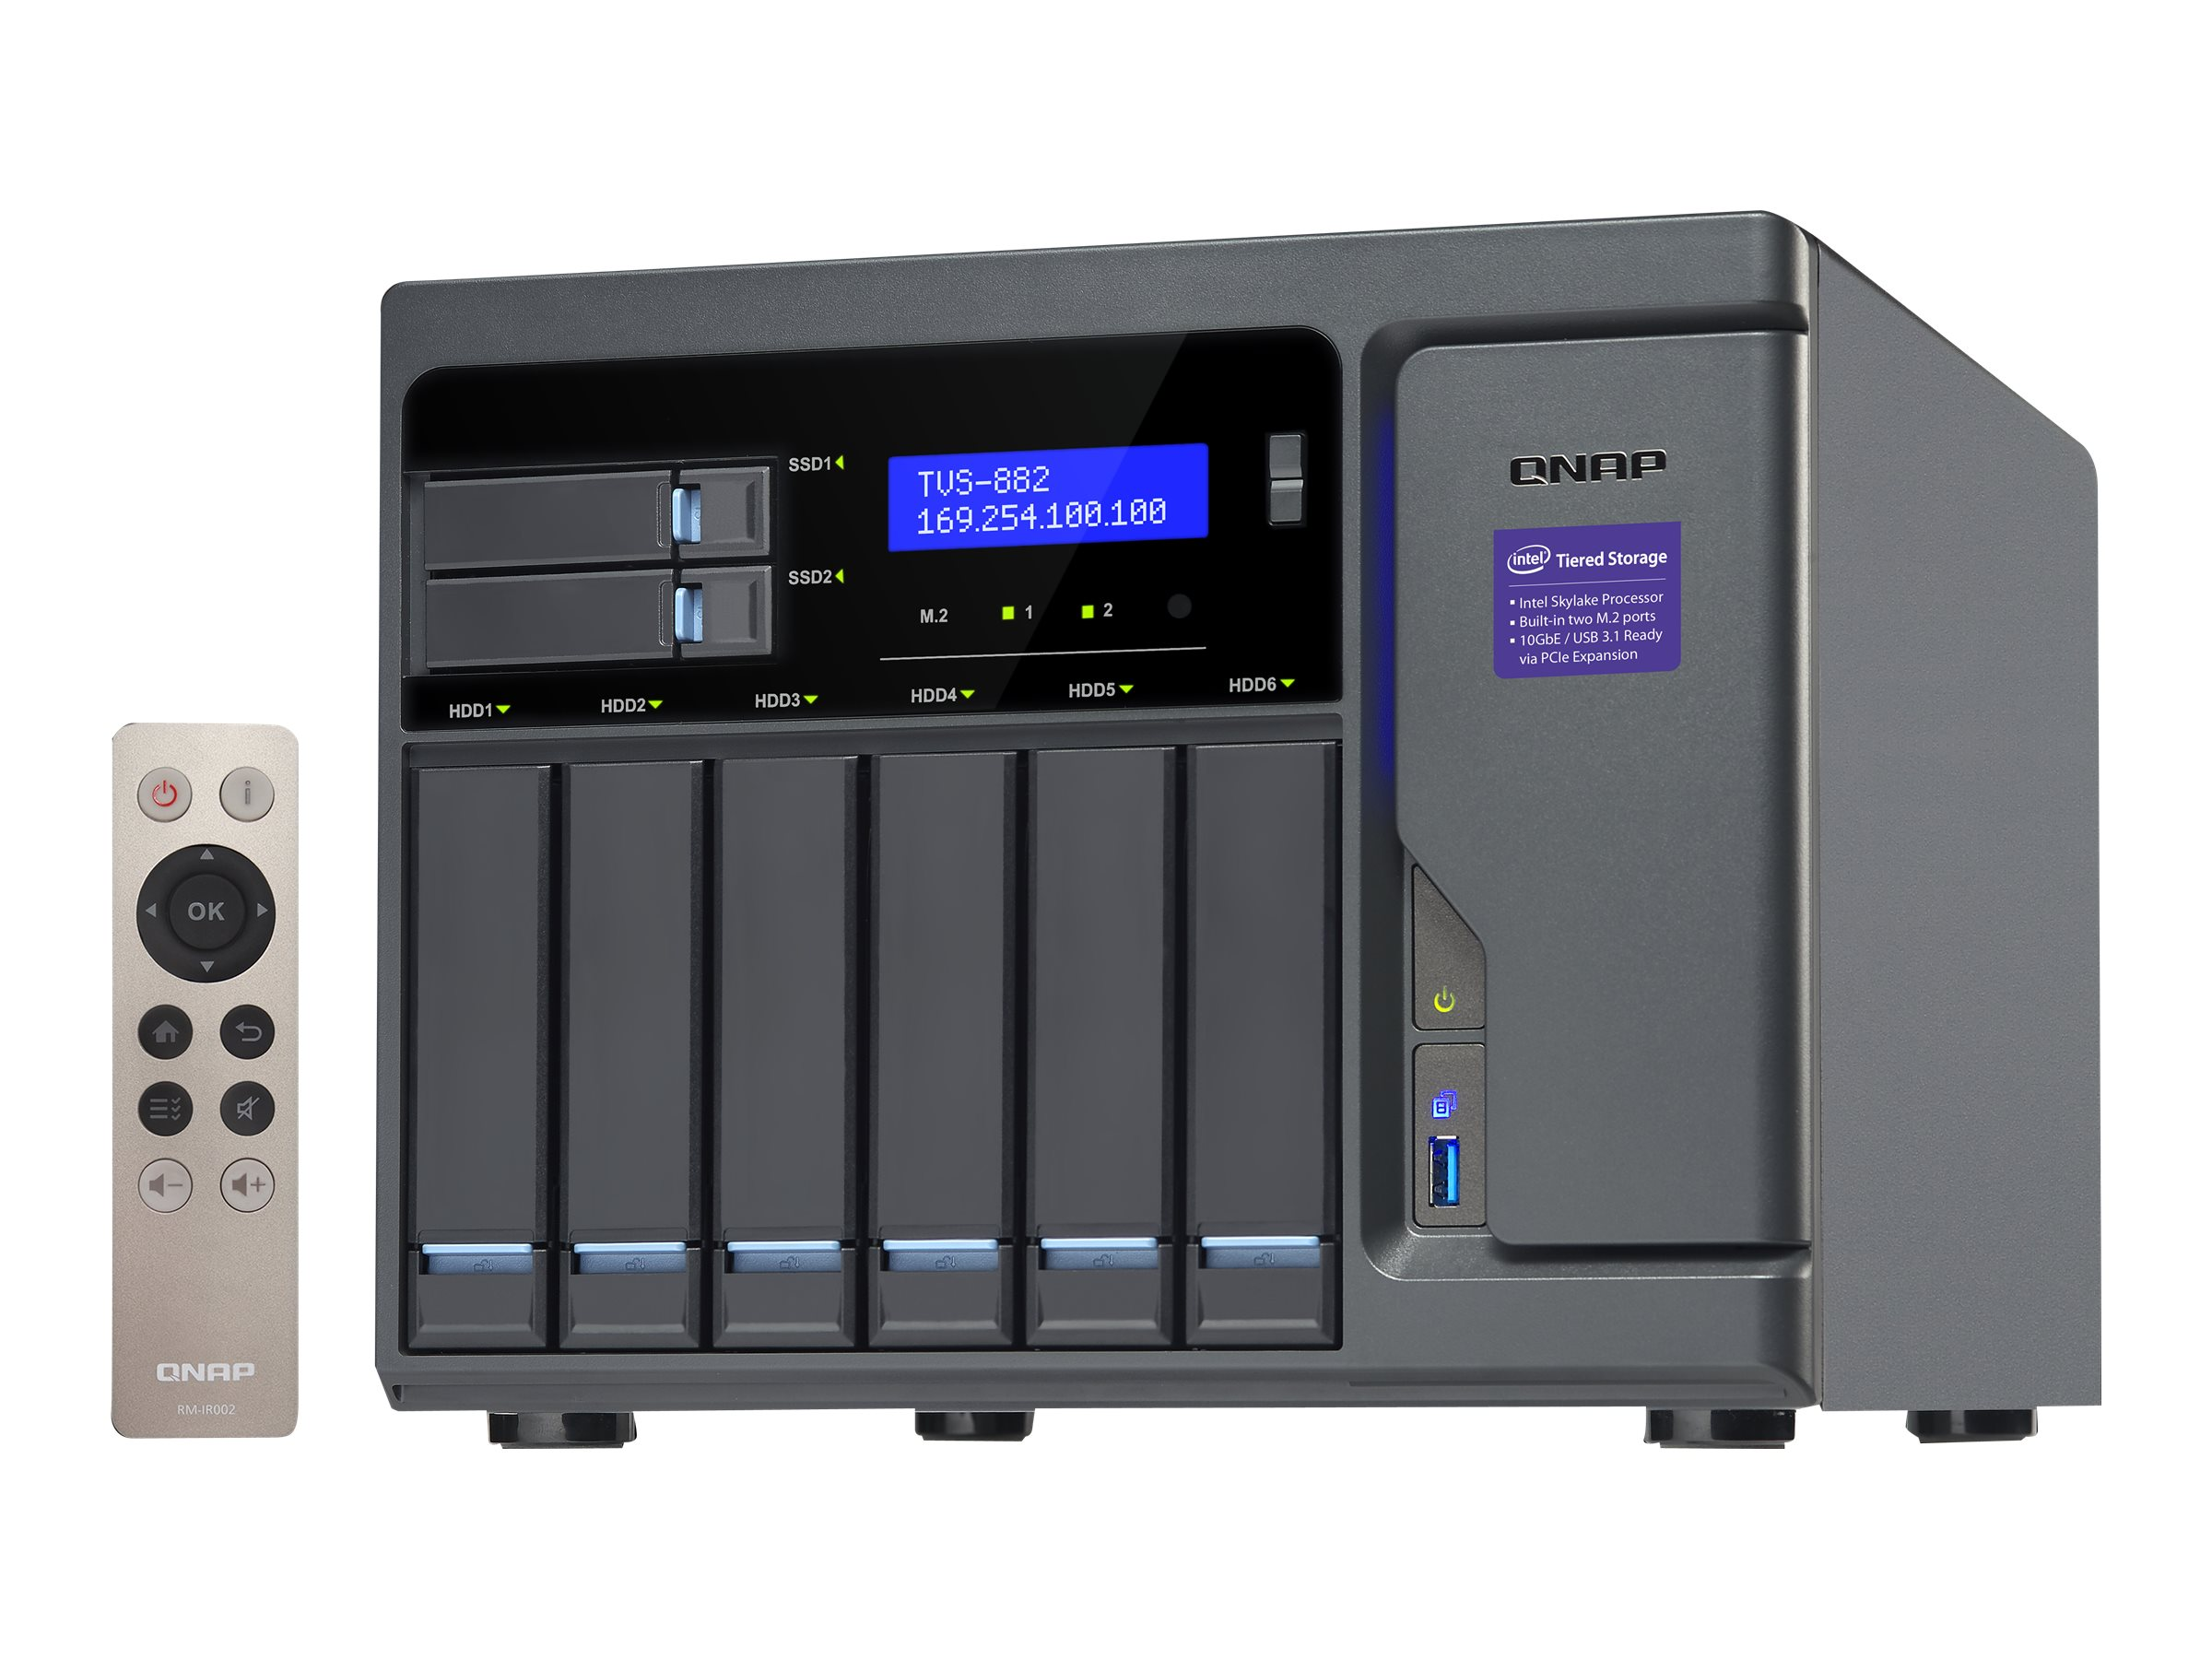 Qnap High Performance 8-Bay 6+2 NAS iSCSI IP-SAN w  Intel Skylake